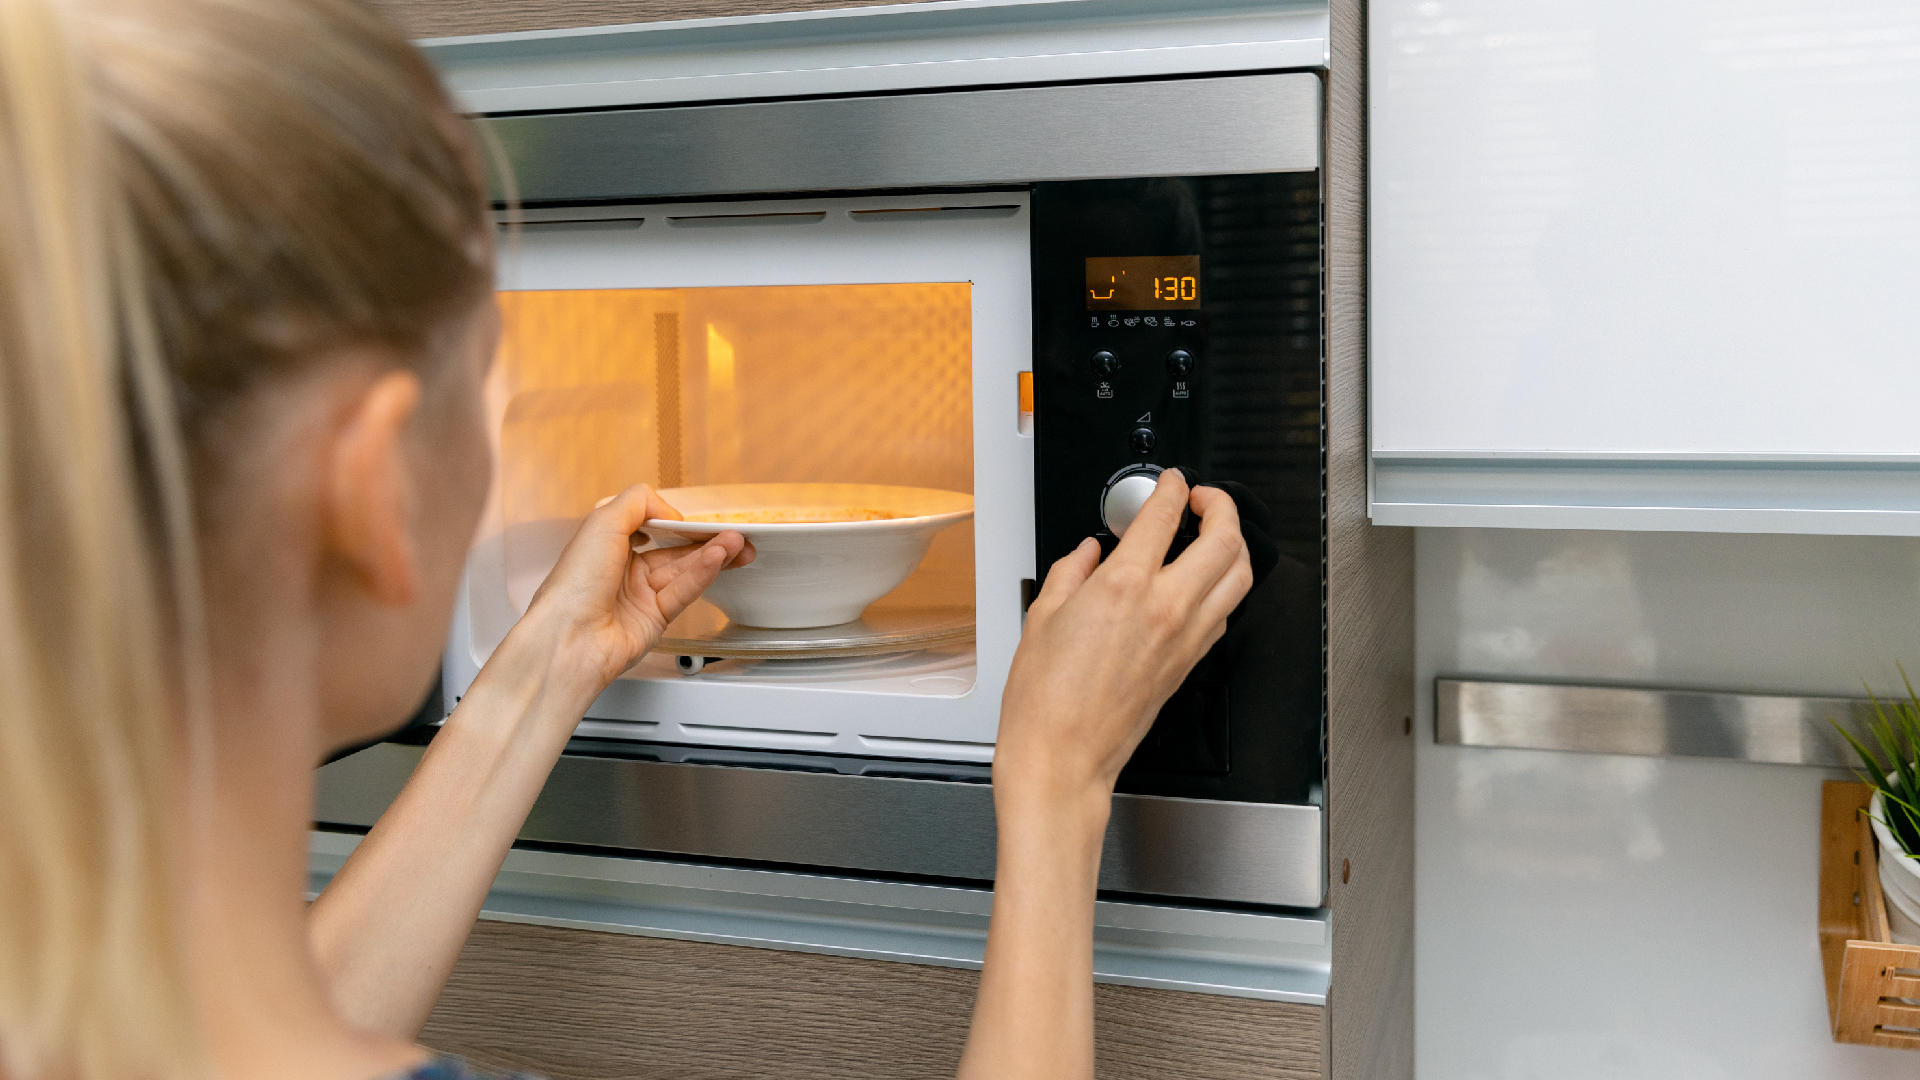 """Featured image for """"How to Fix a Microwave Fuse That Keeps Blowing"""""""